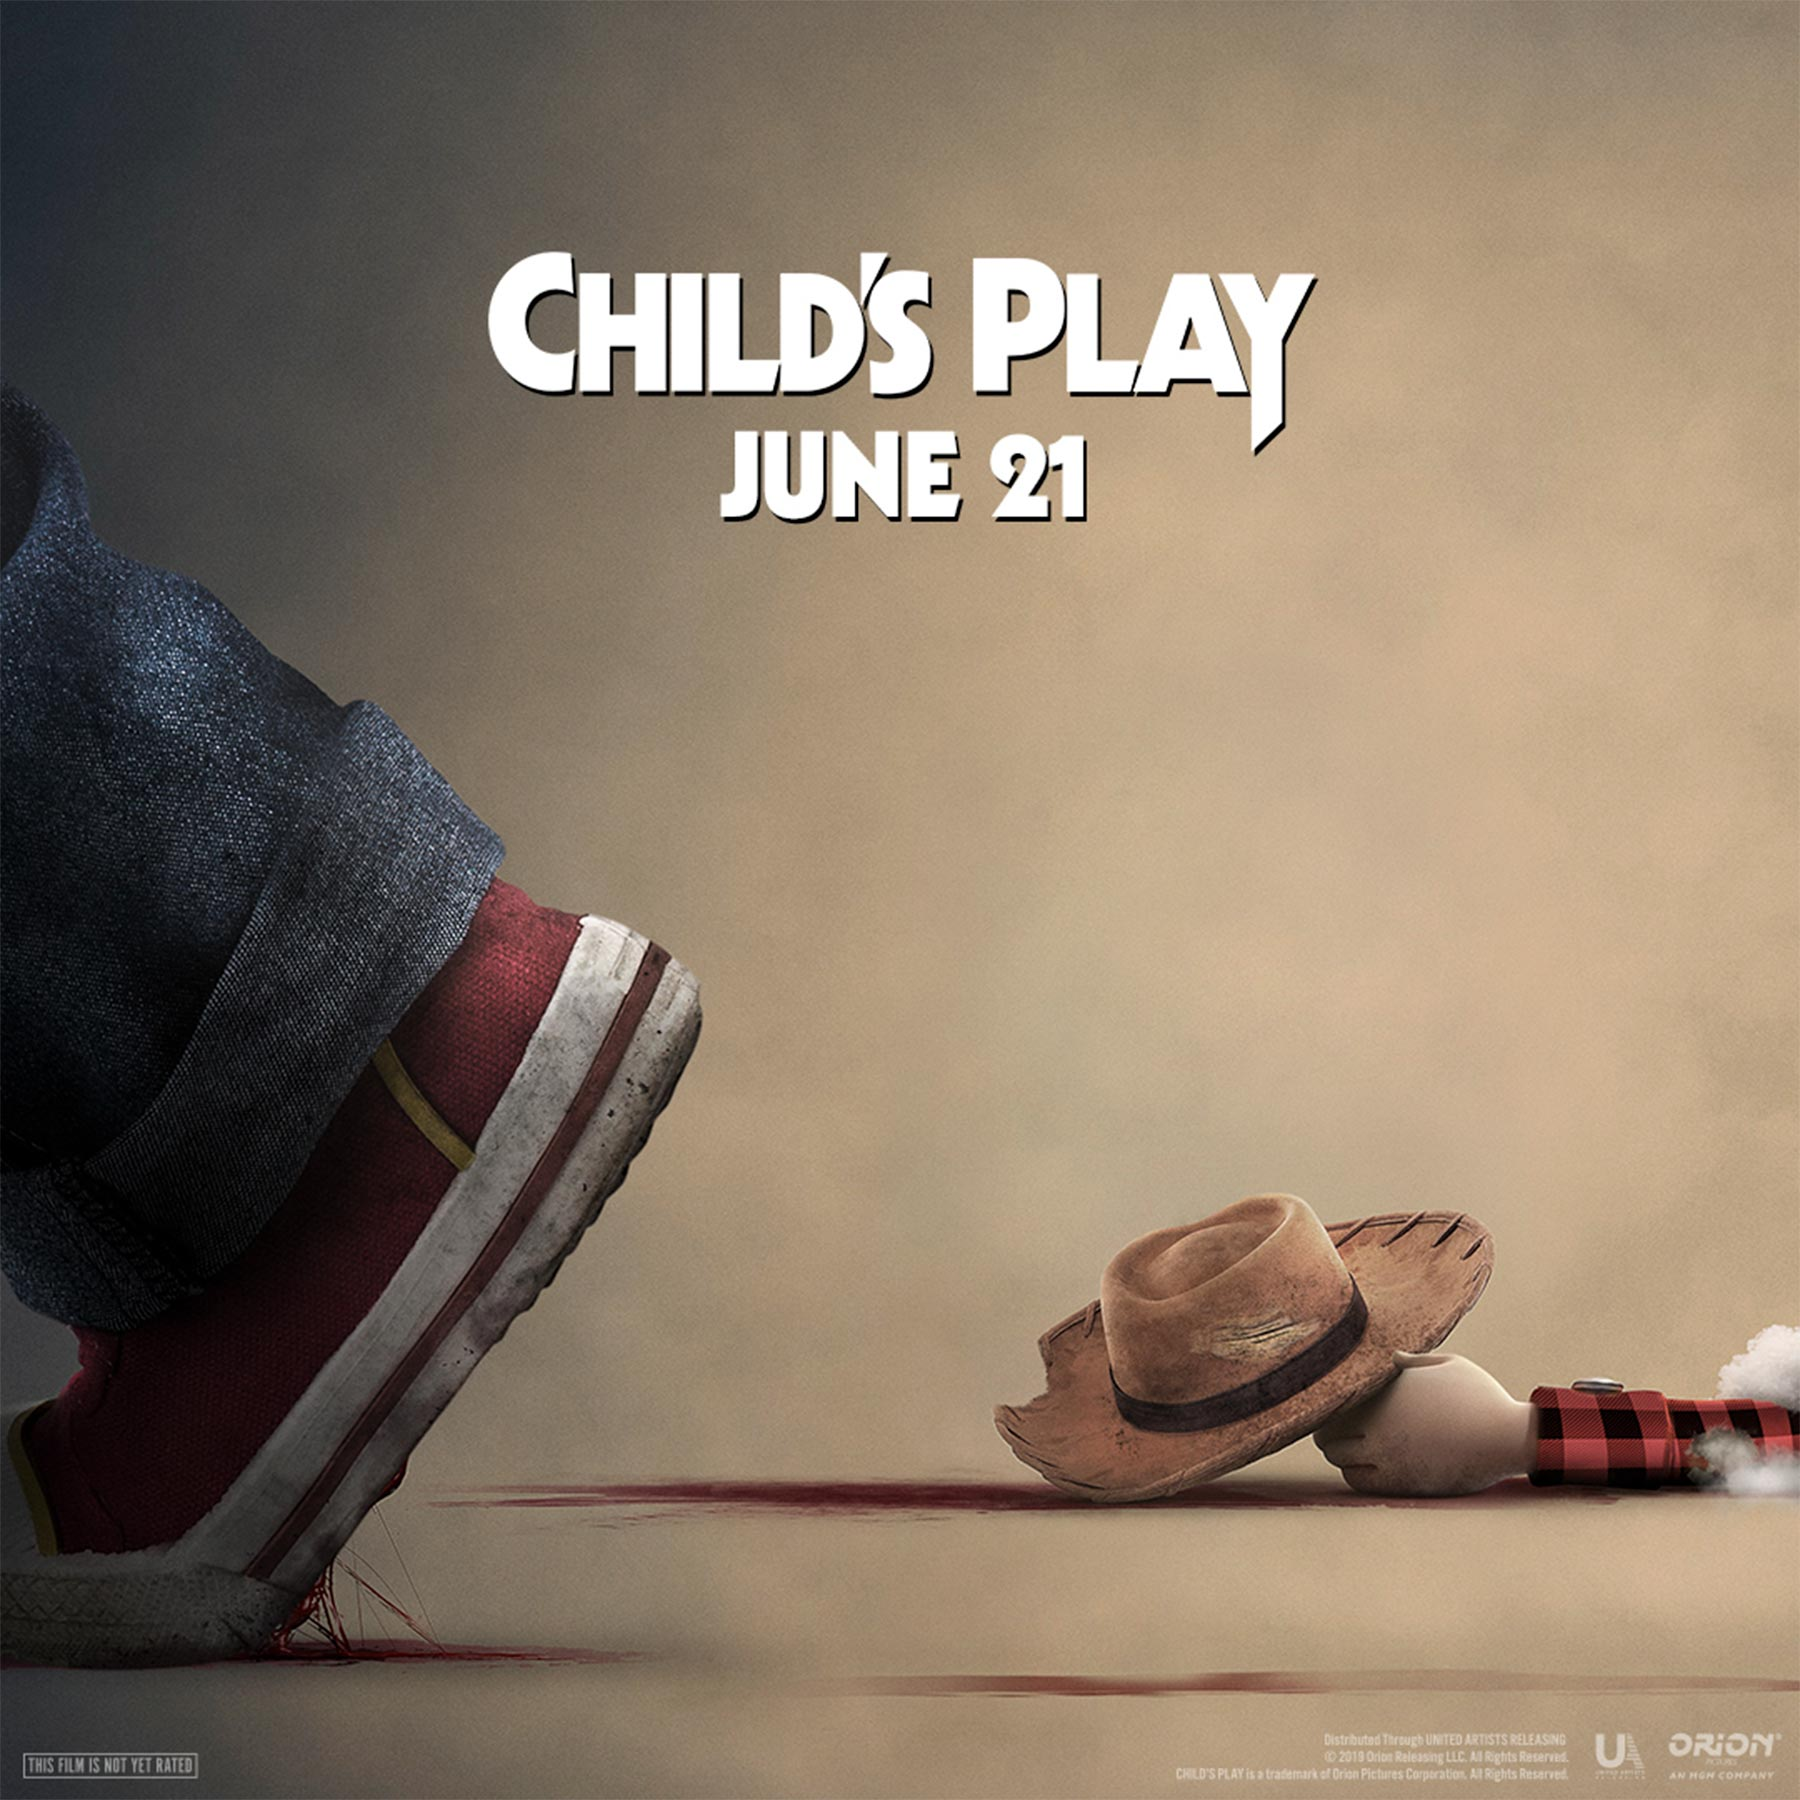 Child's Play movie poster CR: Orion Pictures